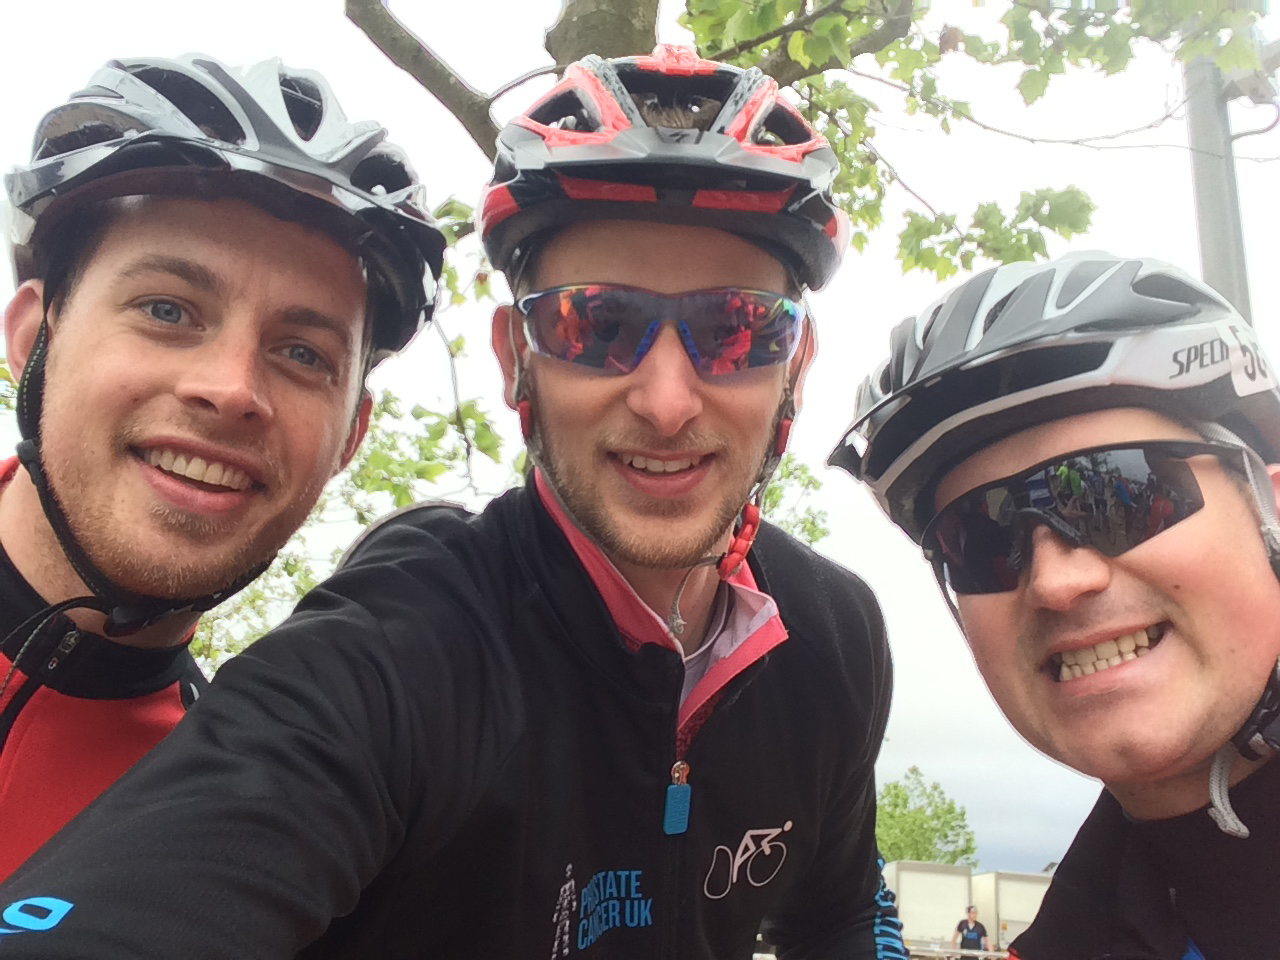 Left to right: Scott Hunter, Ryan Webster and James Mackie cycled from London to Amsterdam.